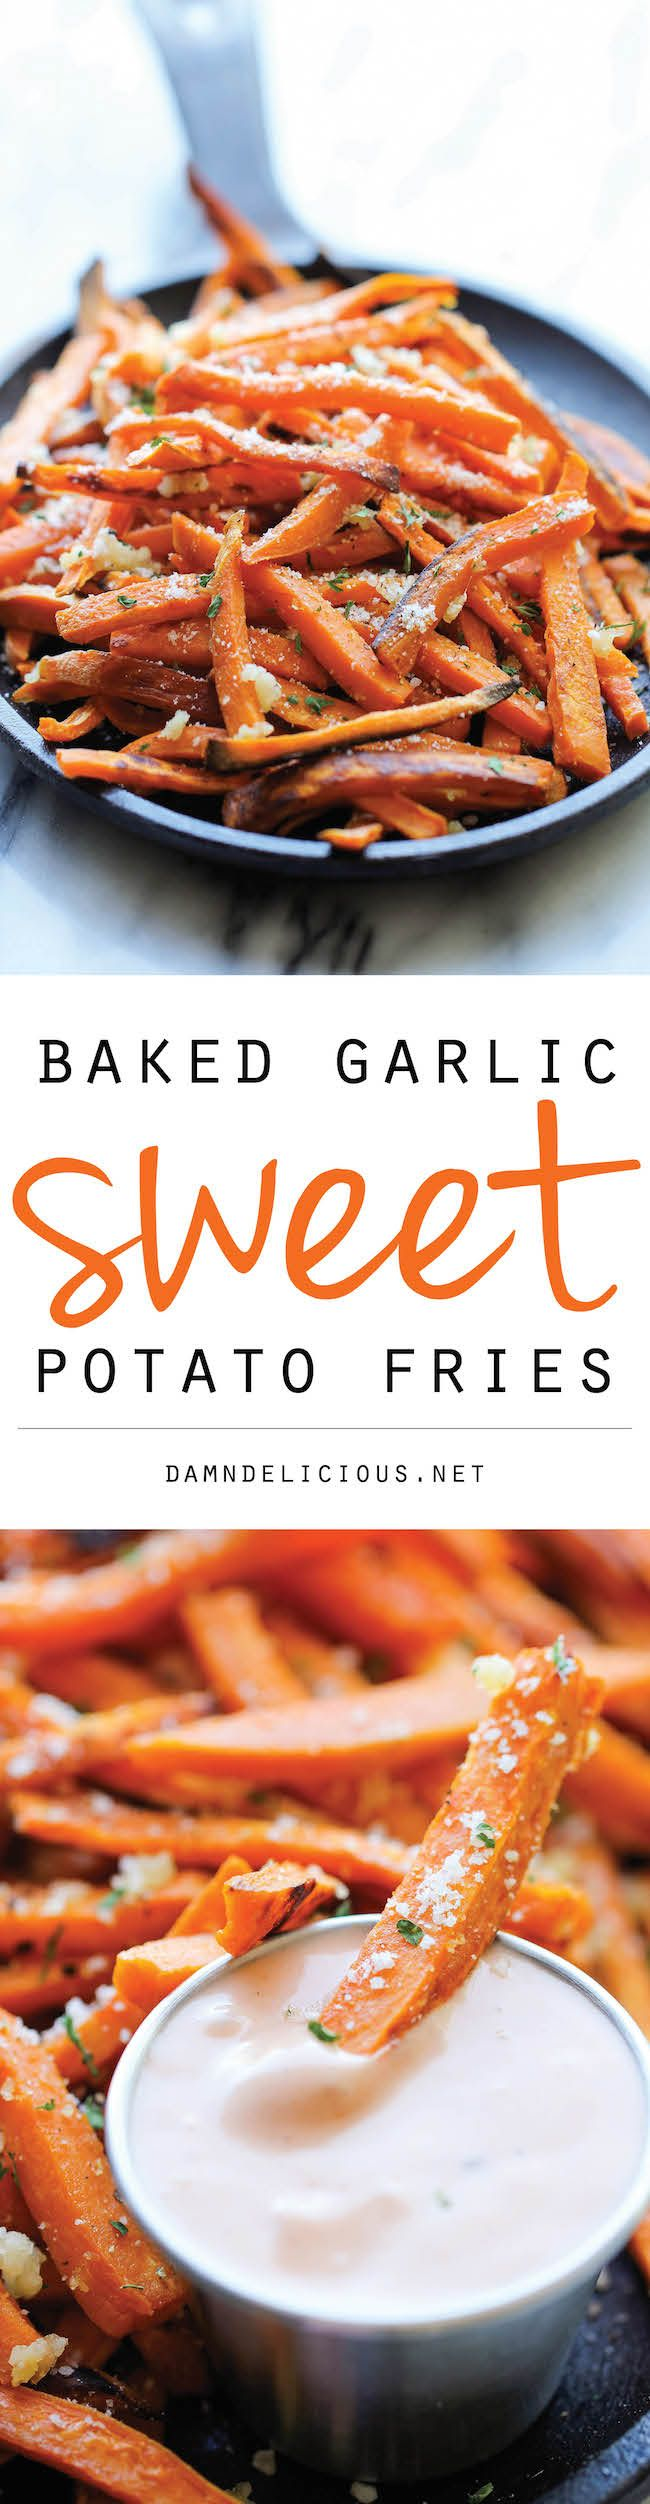 Baked Garlic Sweet Potato Fries - Amazingly crisp on the outside and tender on the inside, and so much better than the fried version!